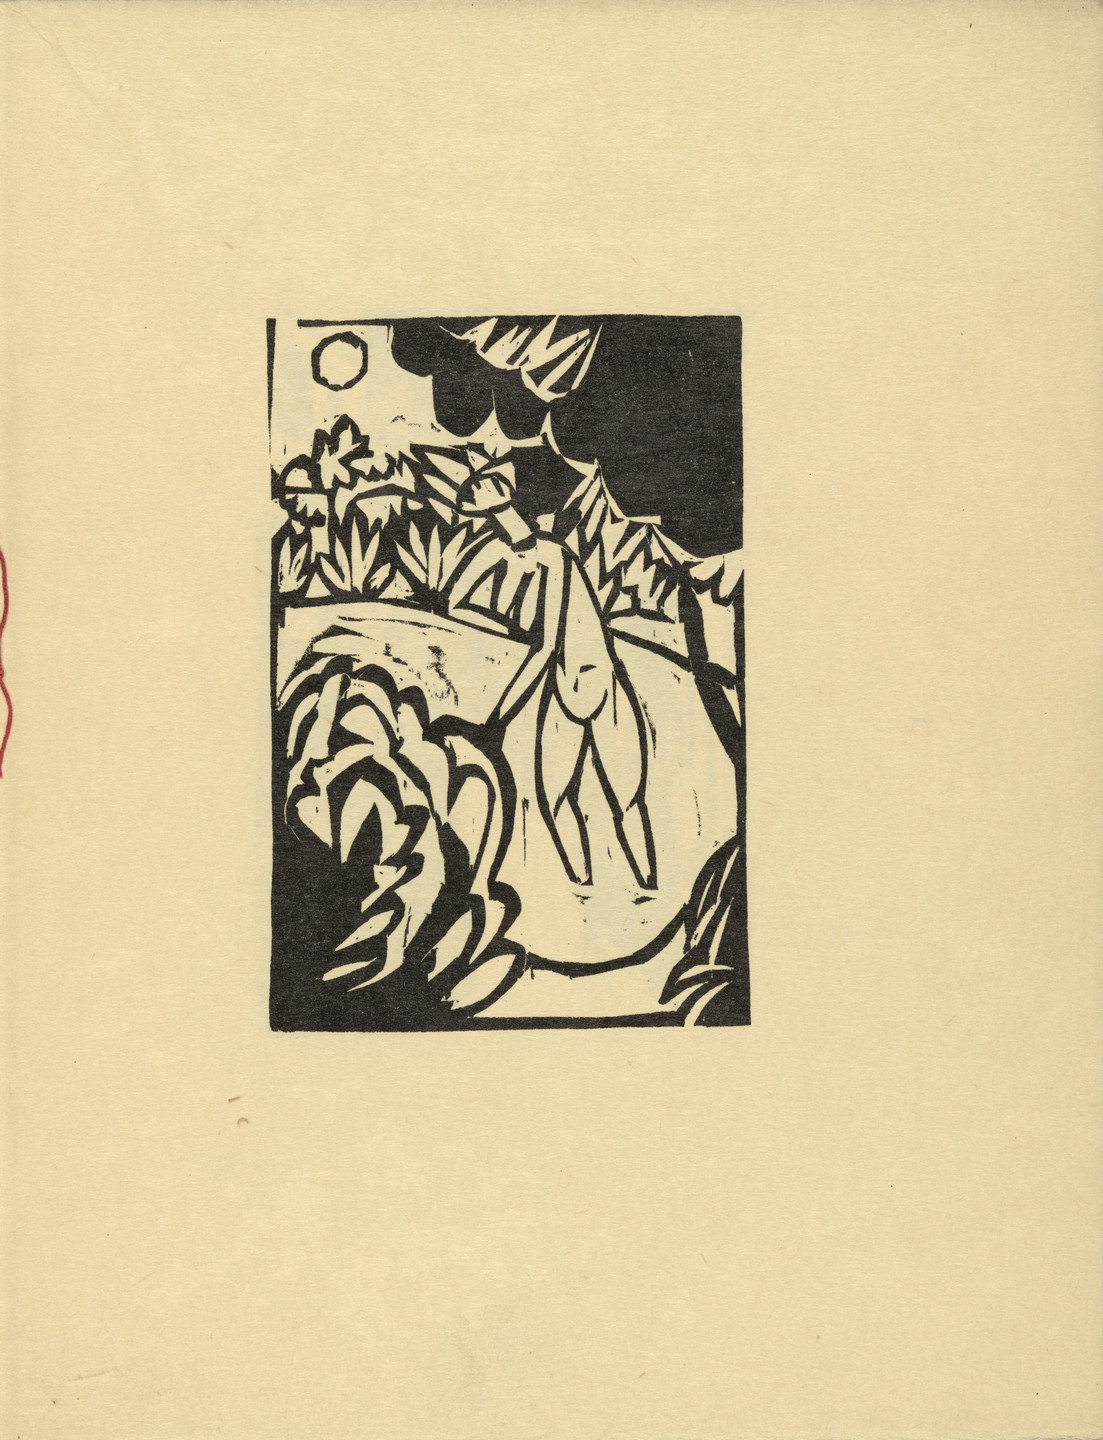 Ernst Ludwig Kirchner. The Canoness in the Lake (Das Stiftsfräulein im See) (plate, folio 4) from Das Stiftsfräulein und der Tod (The Canoness and Death). 1913